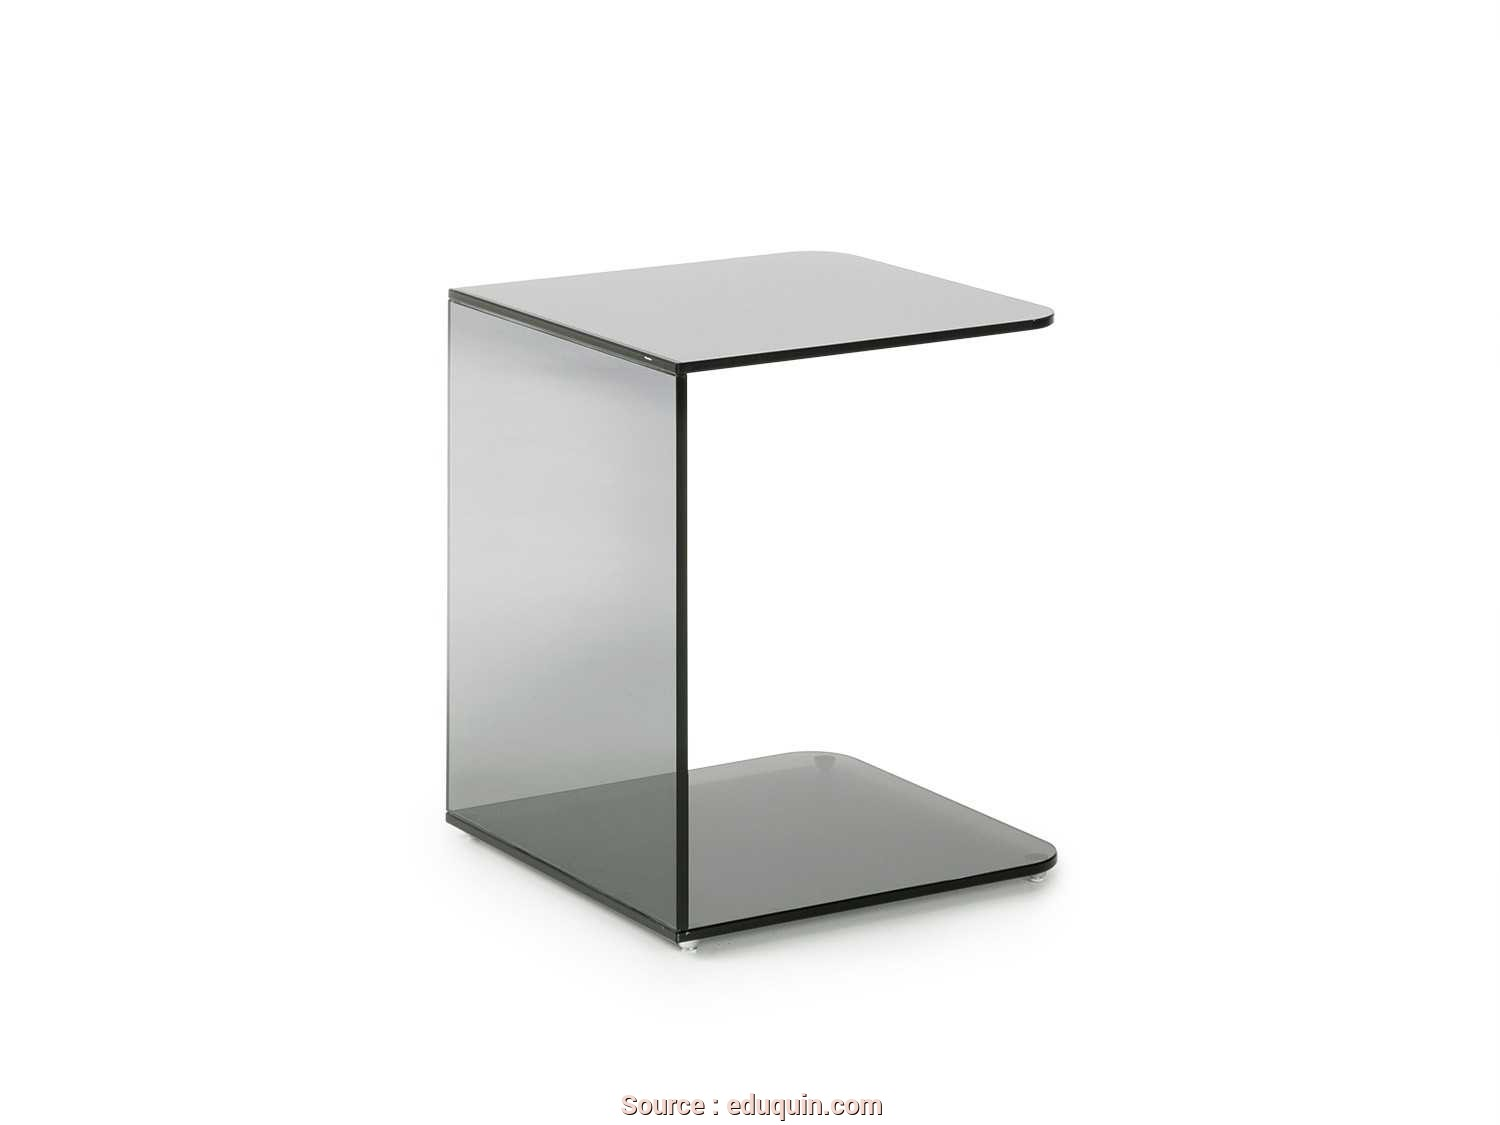 Tavolino Lato Divano Ikea, Loveable C Shaped Side Table Images, Hp Tavolino Servente Lato Divano Multiglass Also Enchanting Ikea, Nz 2018